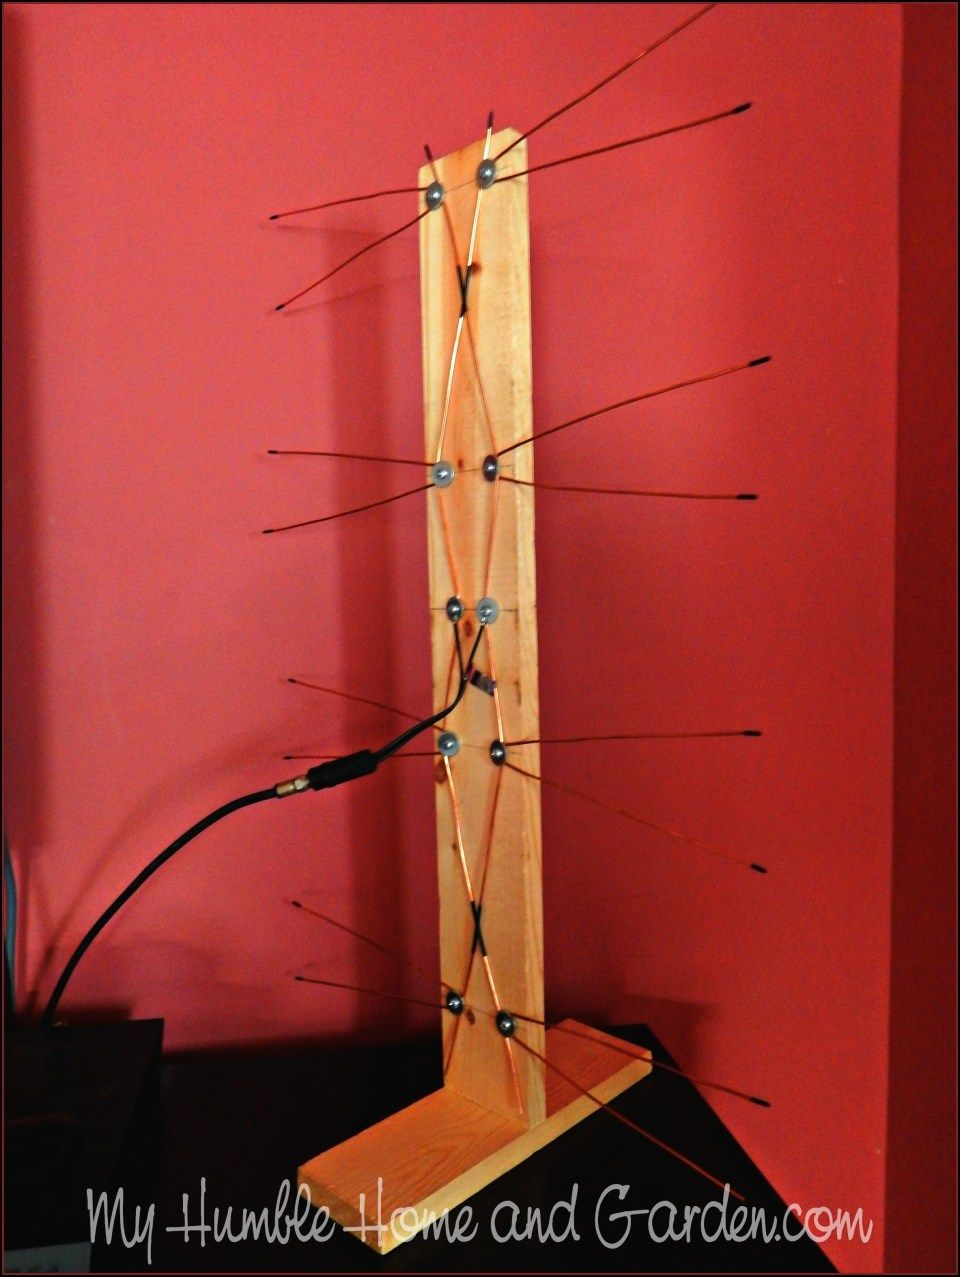 Get Free Tv  Make Your Own Antenna And Save Money